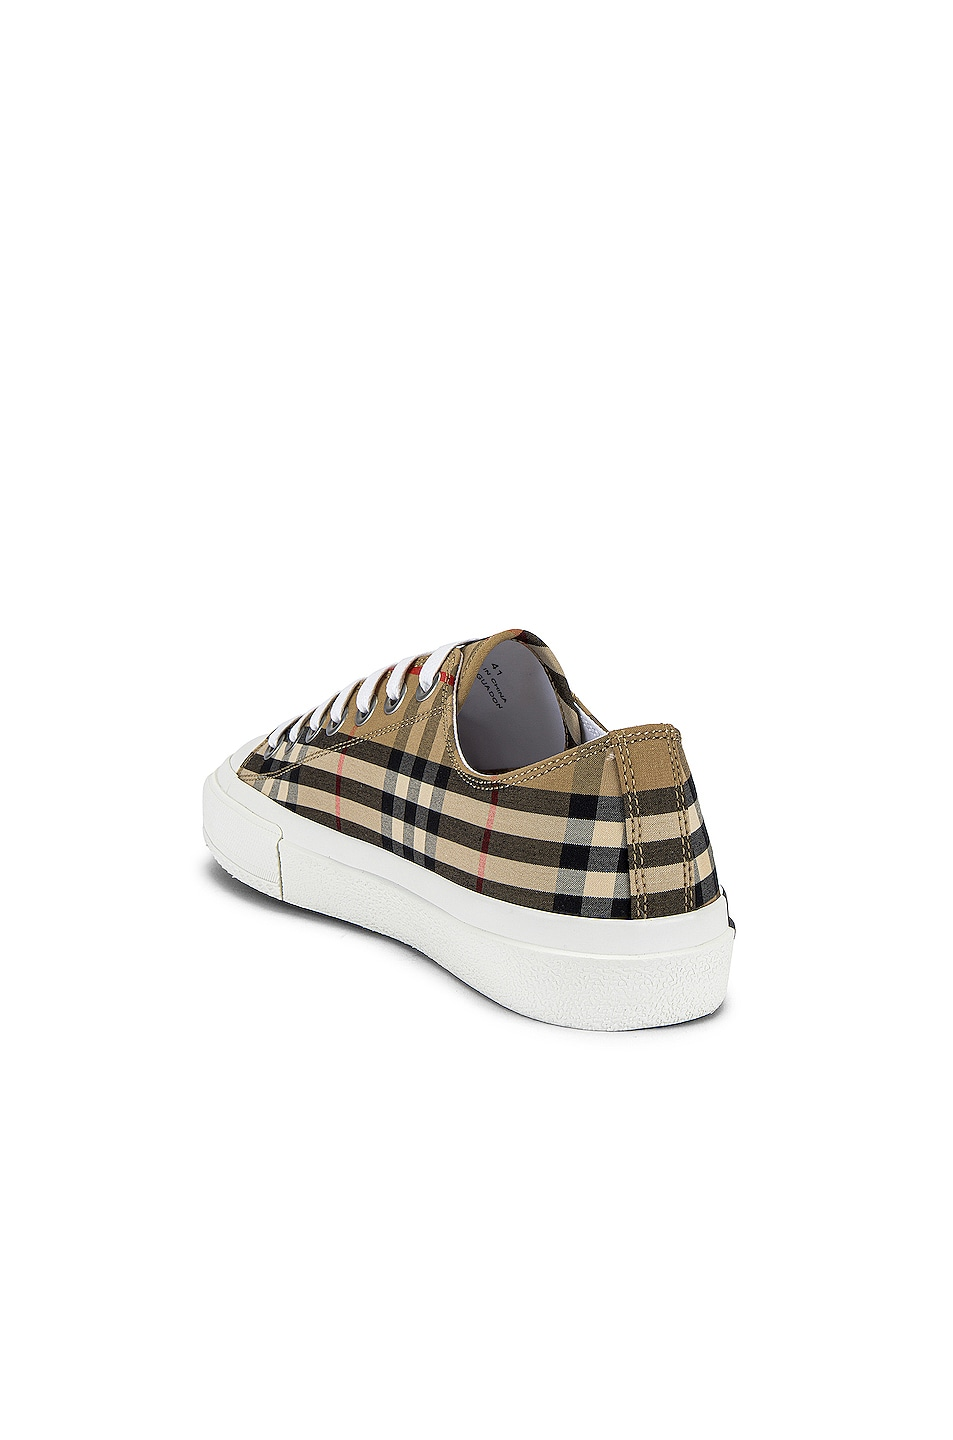 Image 3 of Burberry Larkhall Logo Low Top Sneaker in Archive Beige